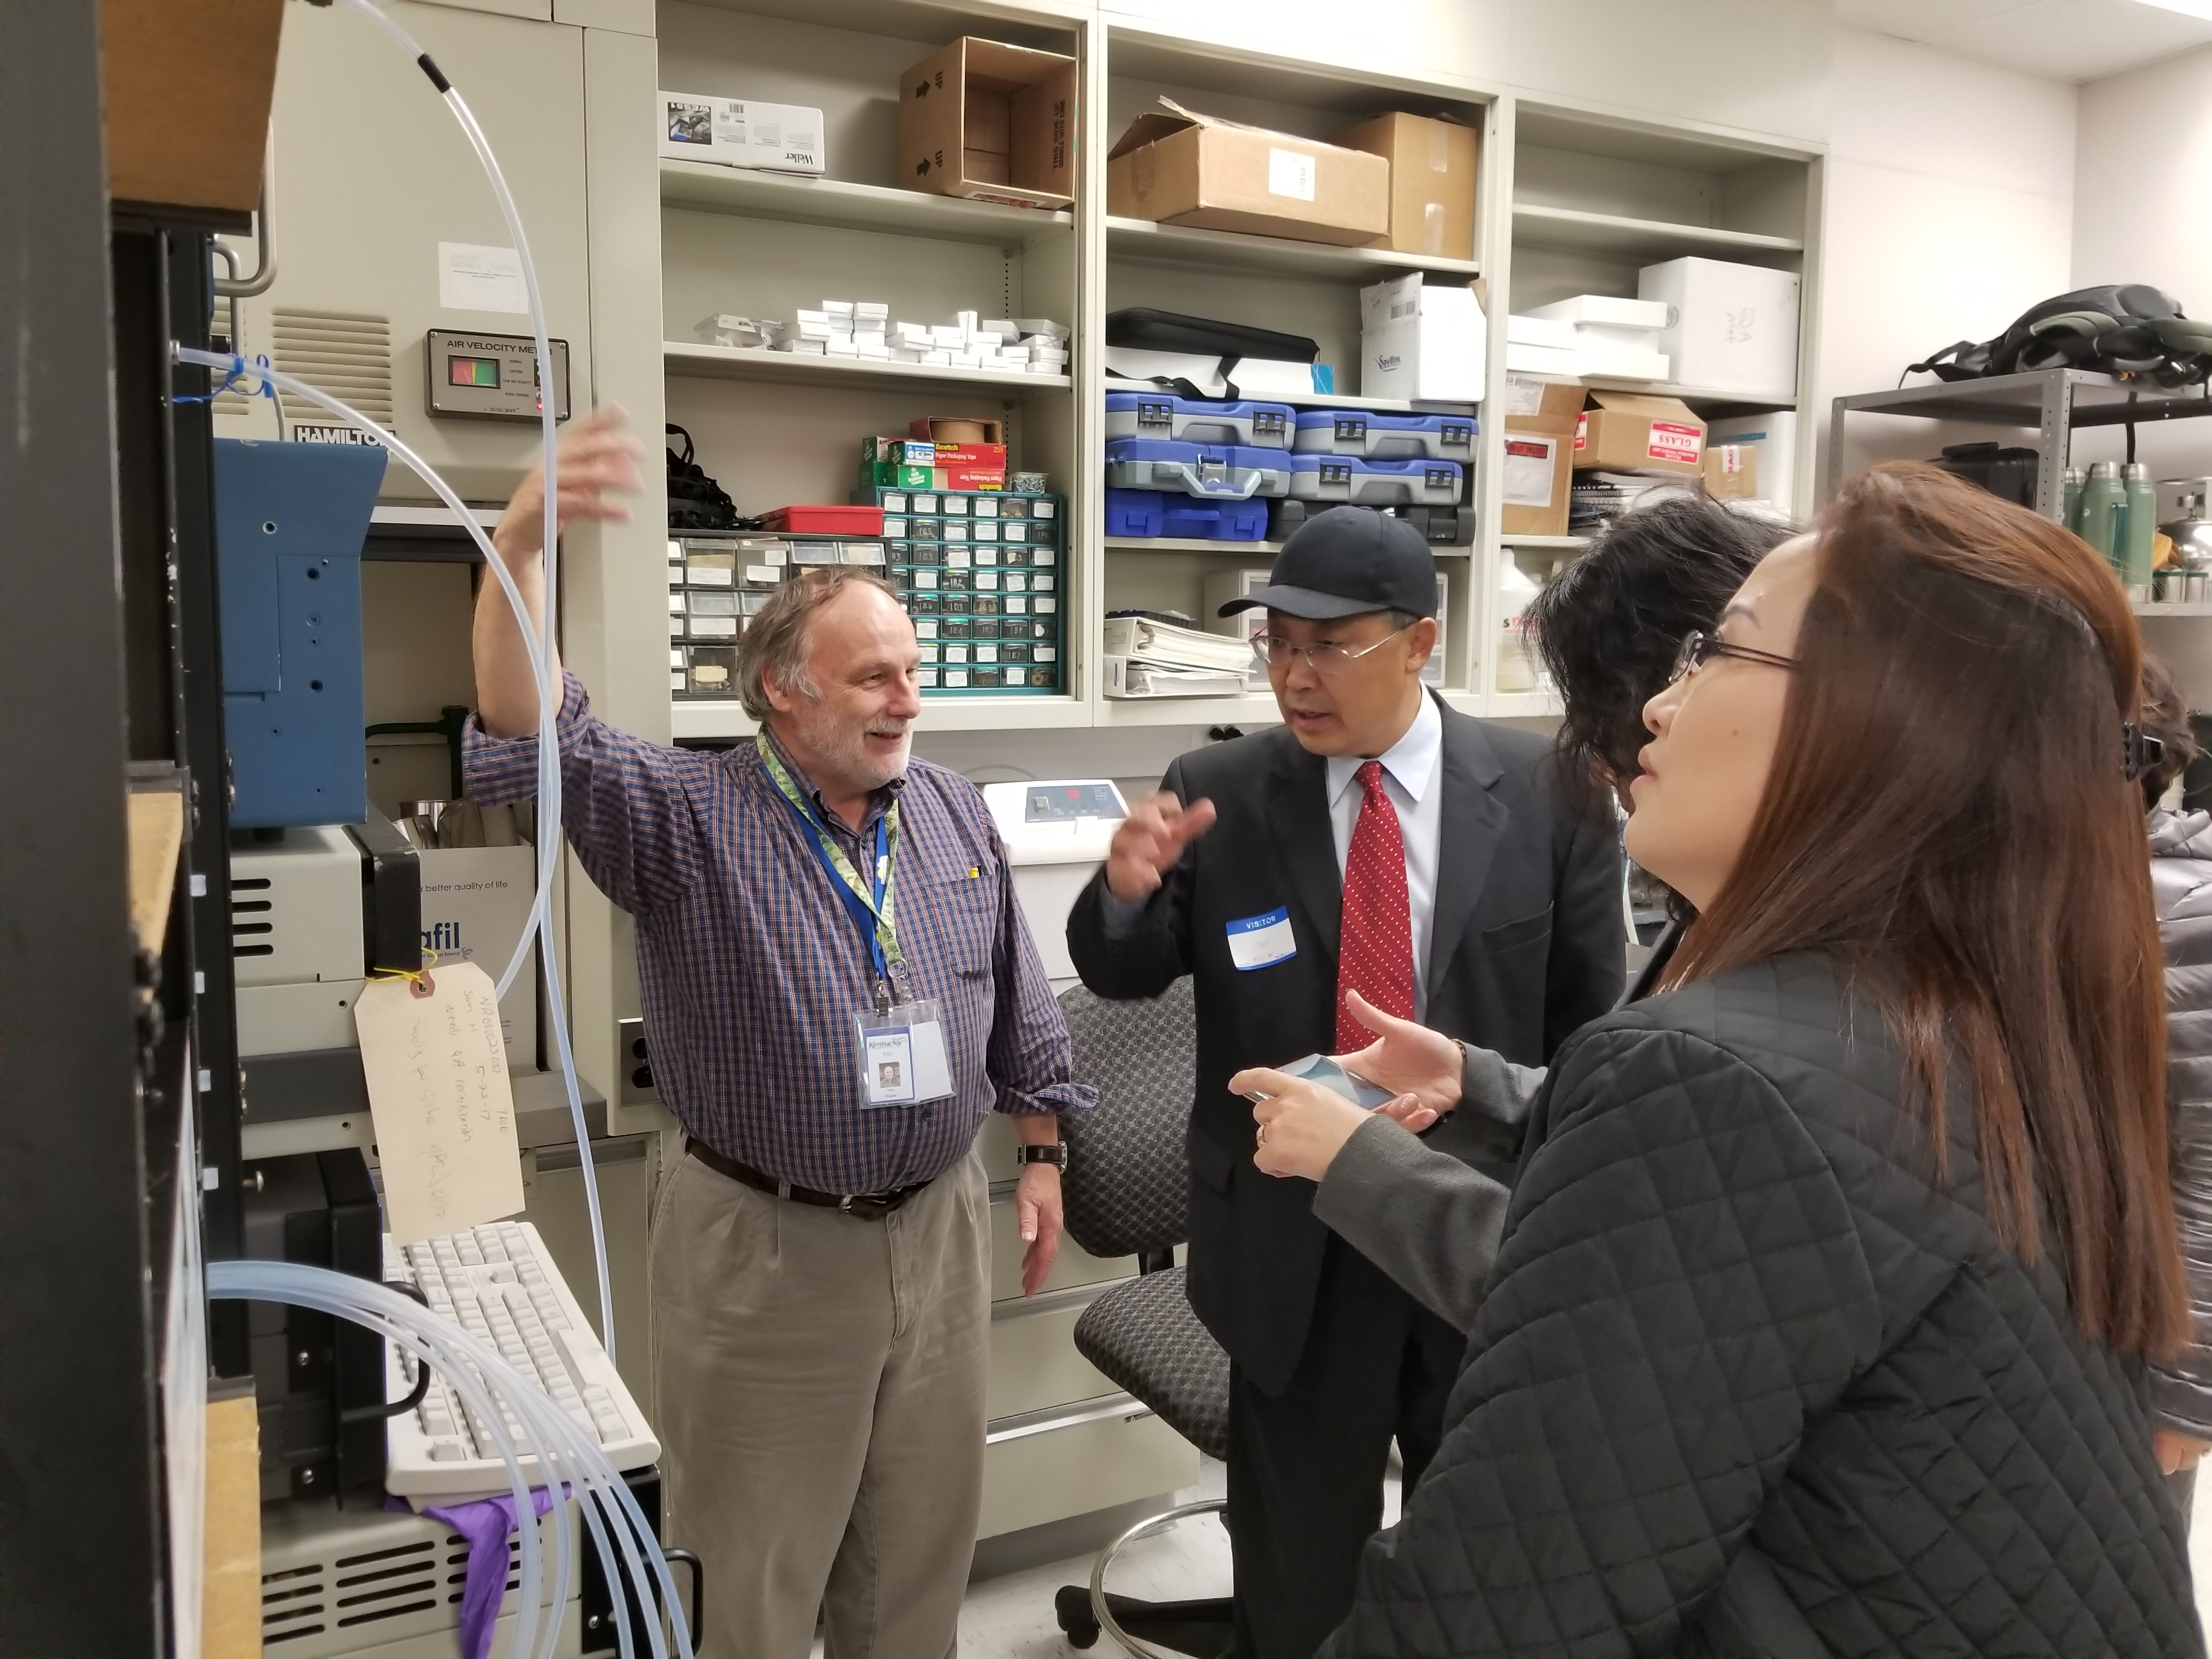 In the lab, Environmental Scientist John Walker describes some of the air monitoring methods used by the Division for AirQuality.